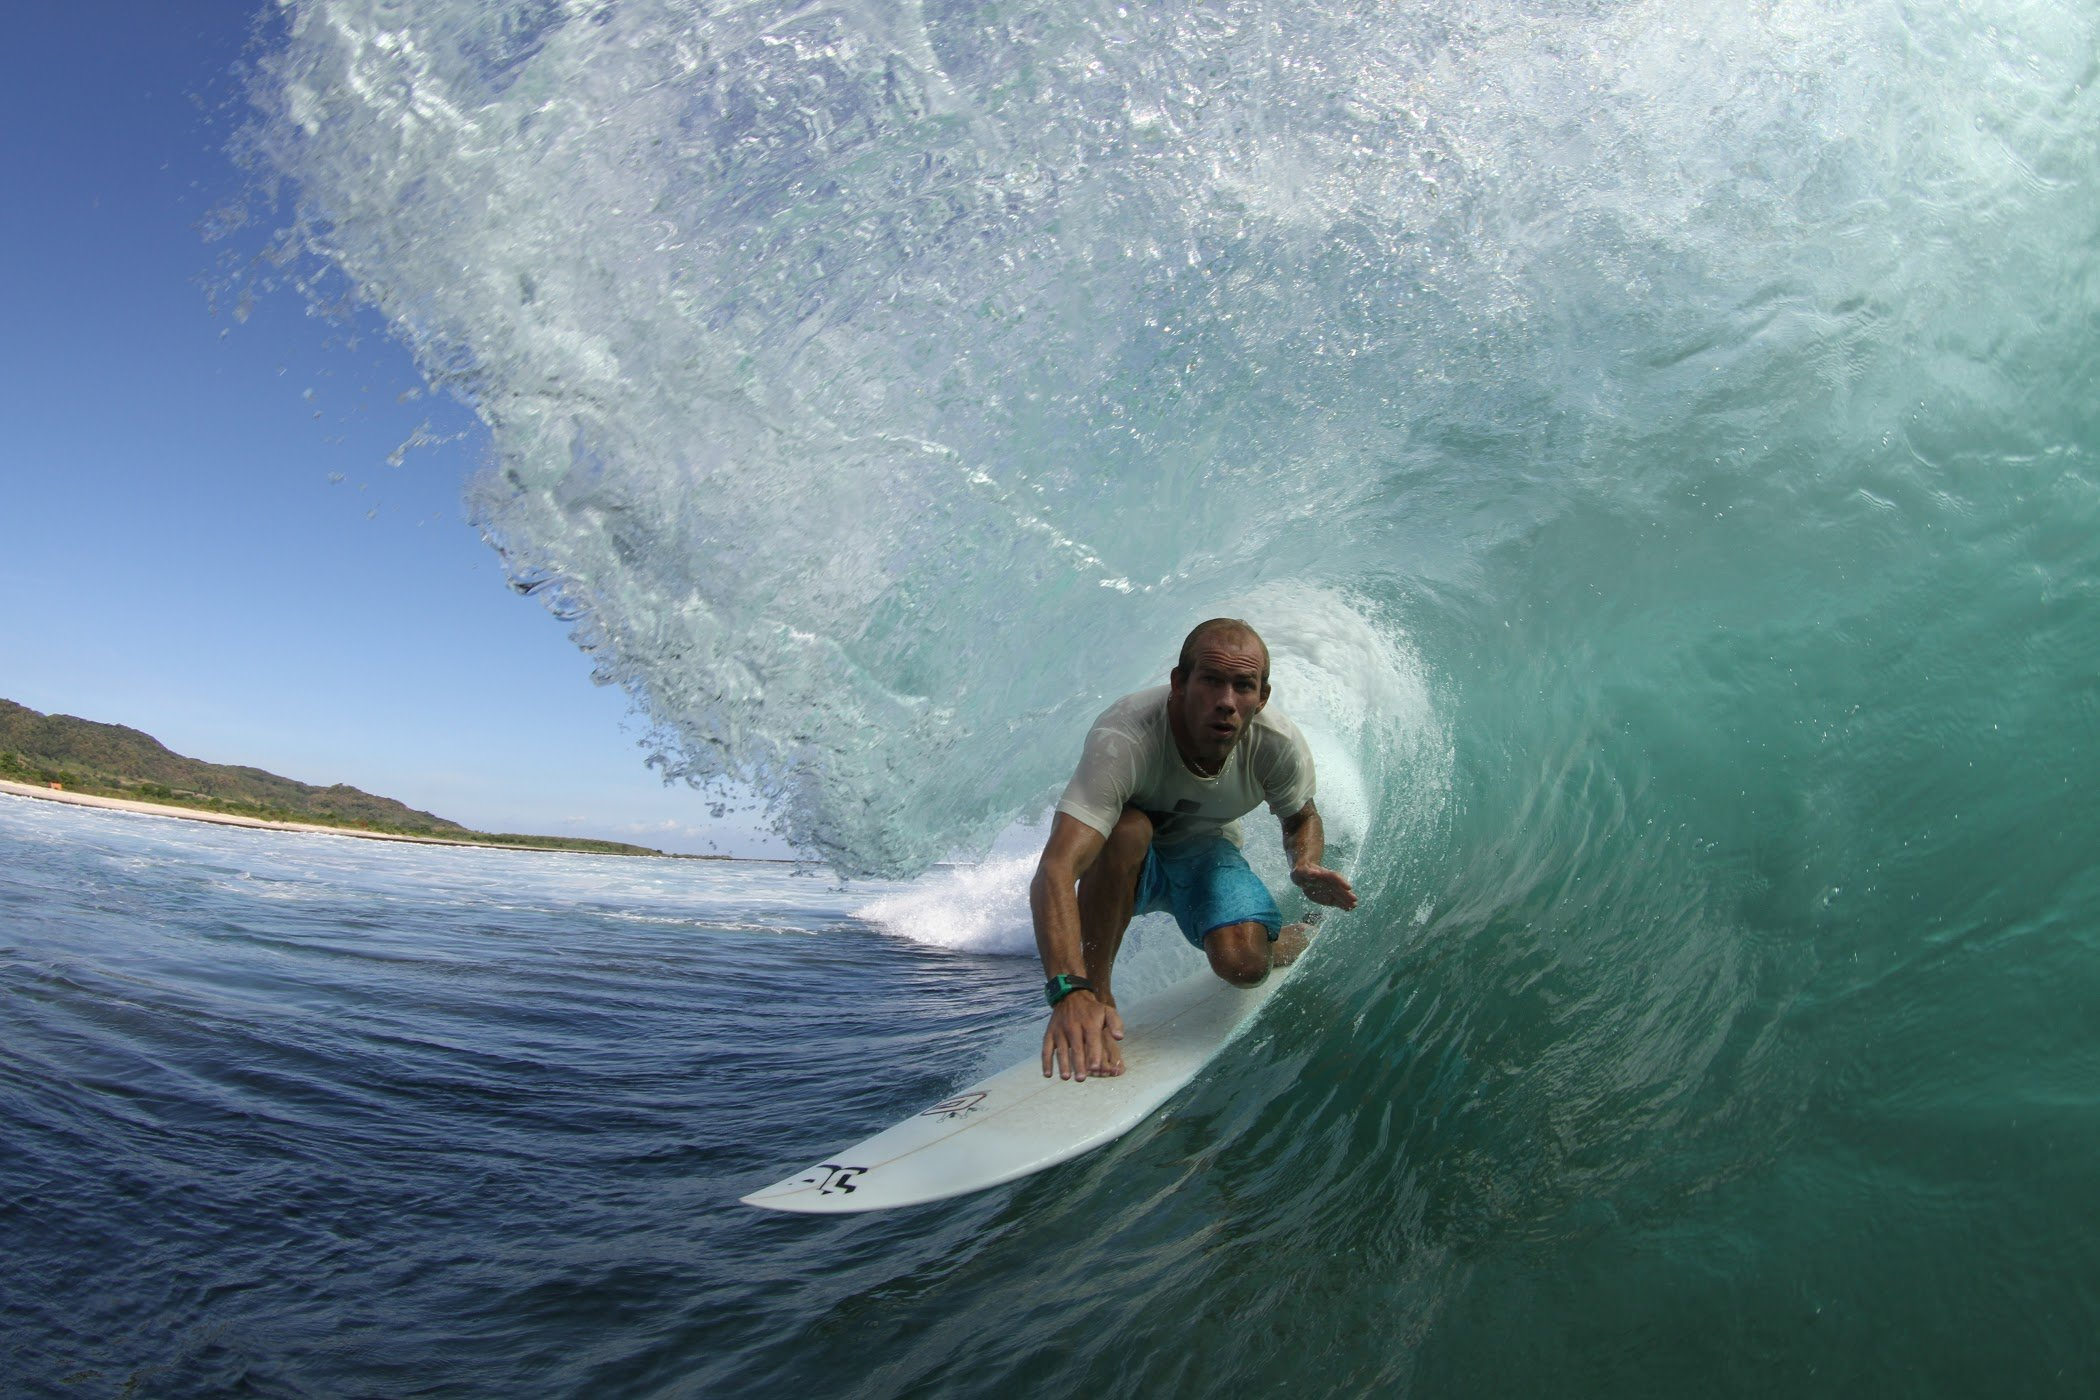 Getting barrelled in Indonesia